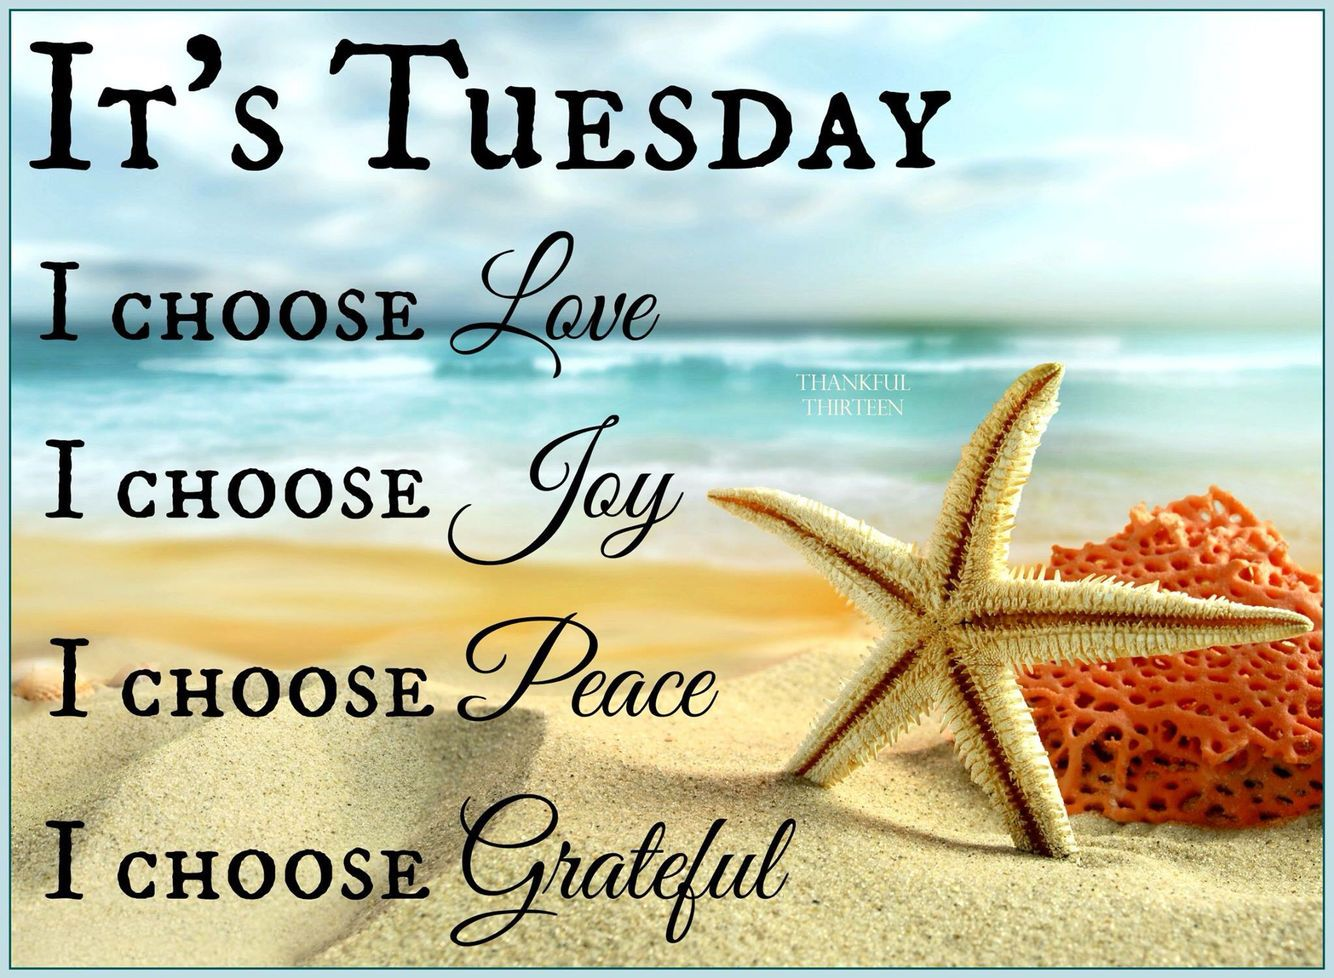 Delicieux Itu0027s Tuesday Tuesday Tuesday Quotes Happy Tuesday Tuesday Quote Happy  Tuesday Quotes